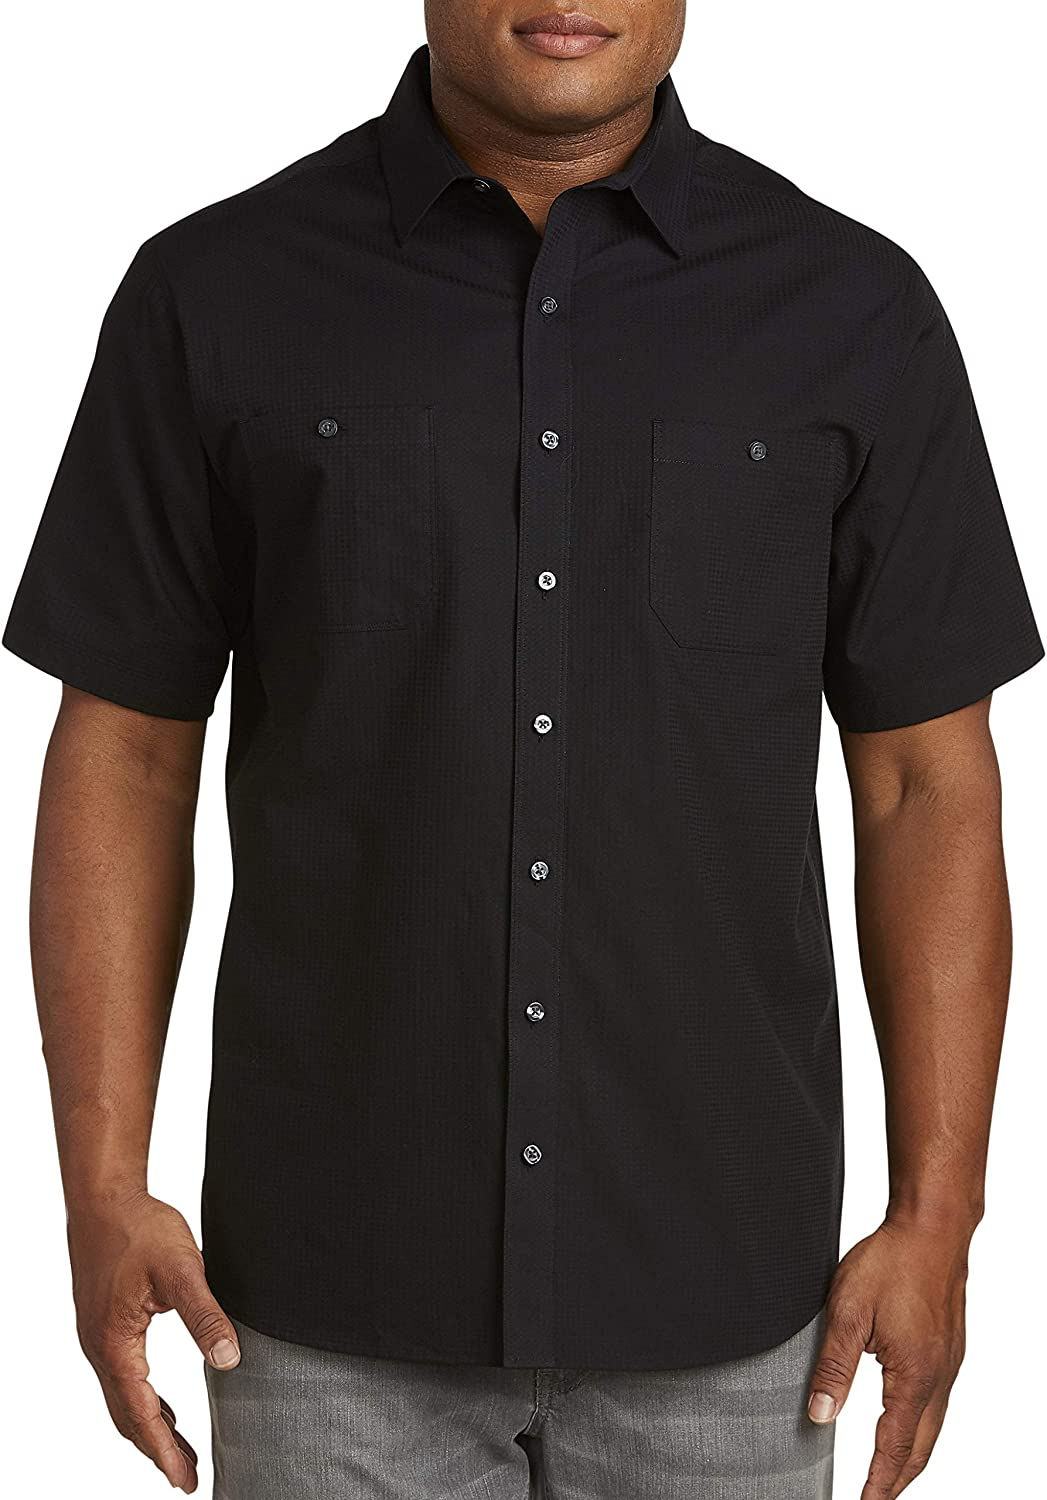 Synrgy by DXL Big and Tall Textured Solid Sport Shirts